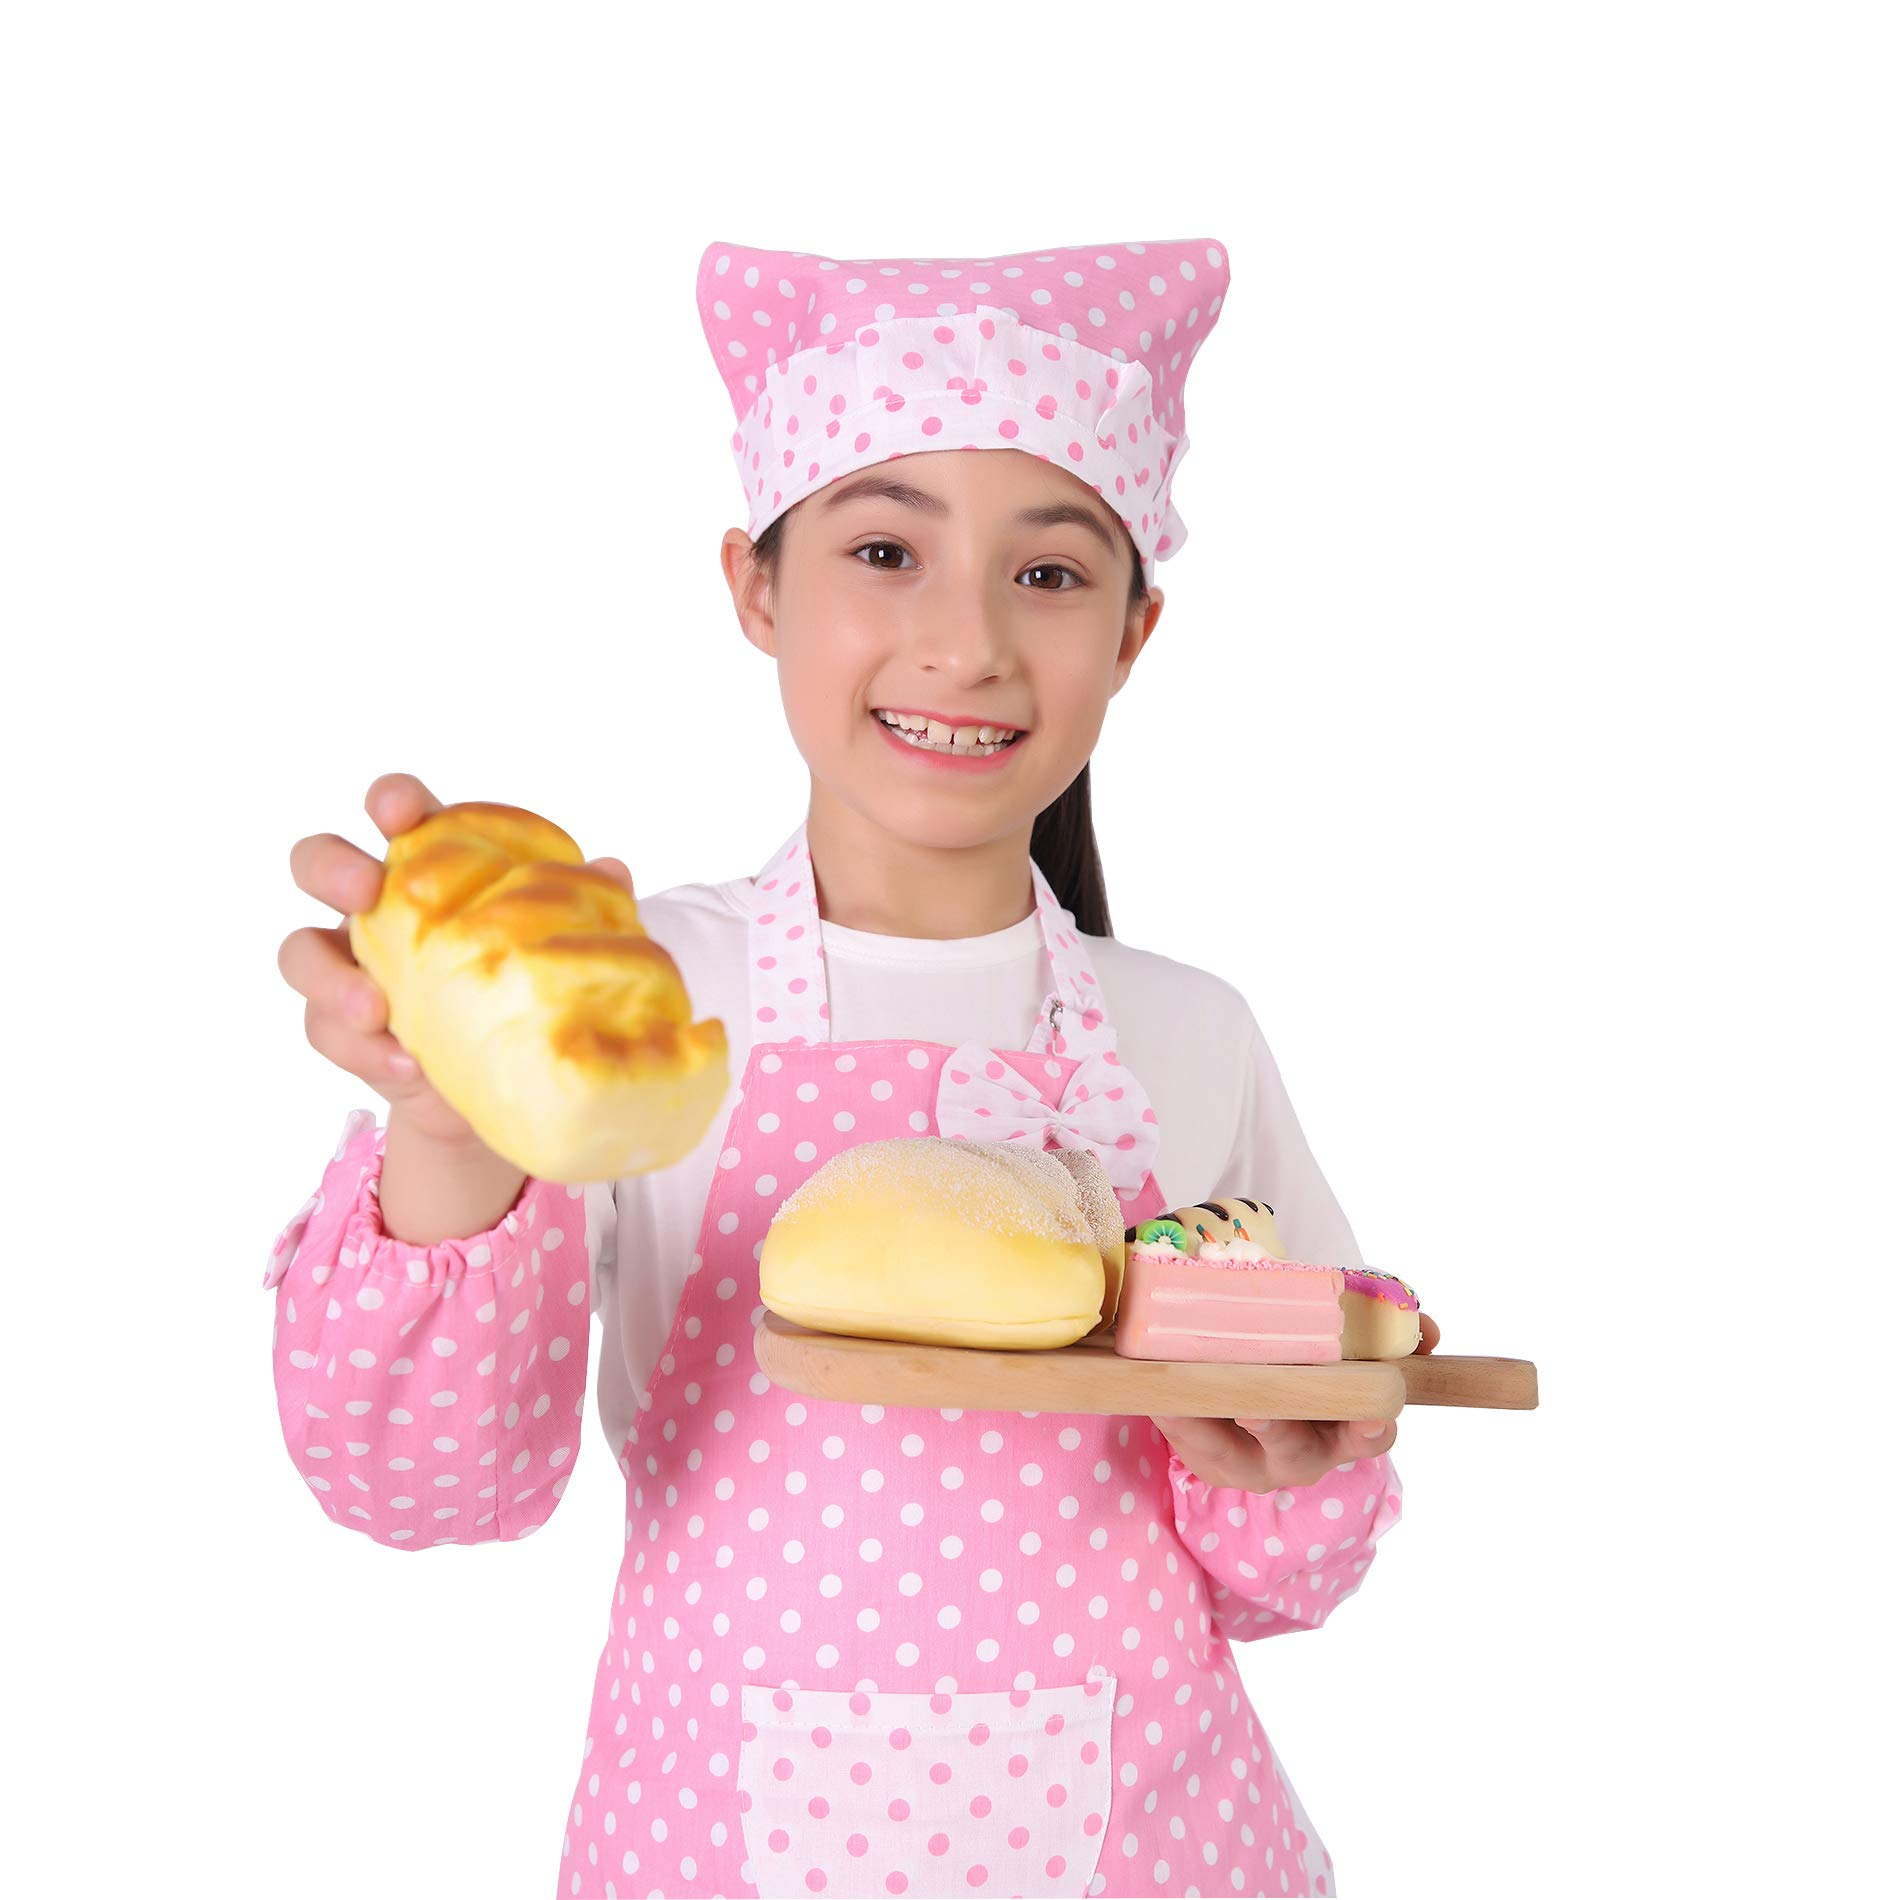 Kids Cooking and Baking Set - 3 Piece Kids\' Cooking Kits Includes Apron, Sleevelet, Headkerchief For 2 to 6 Year Old Girls or Boys (Pink)